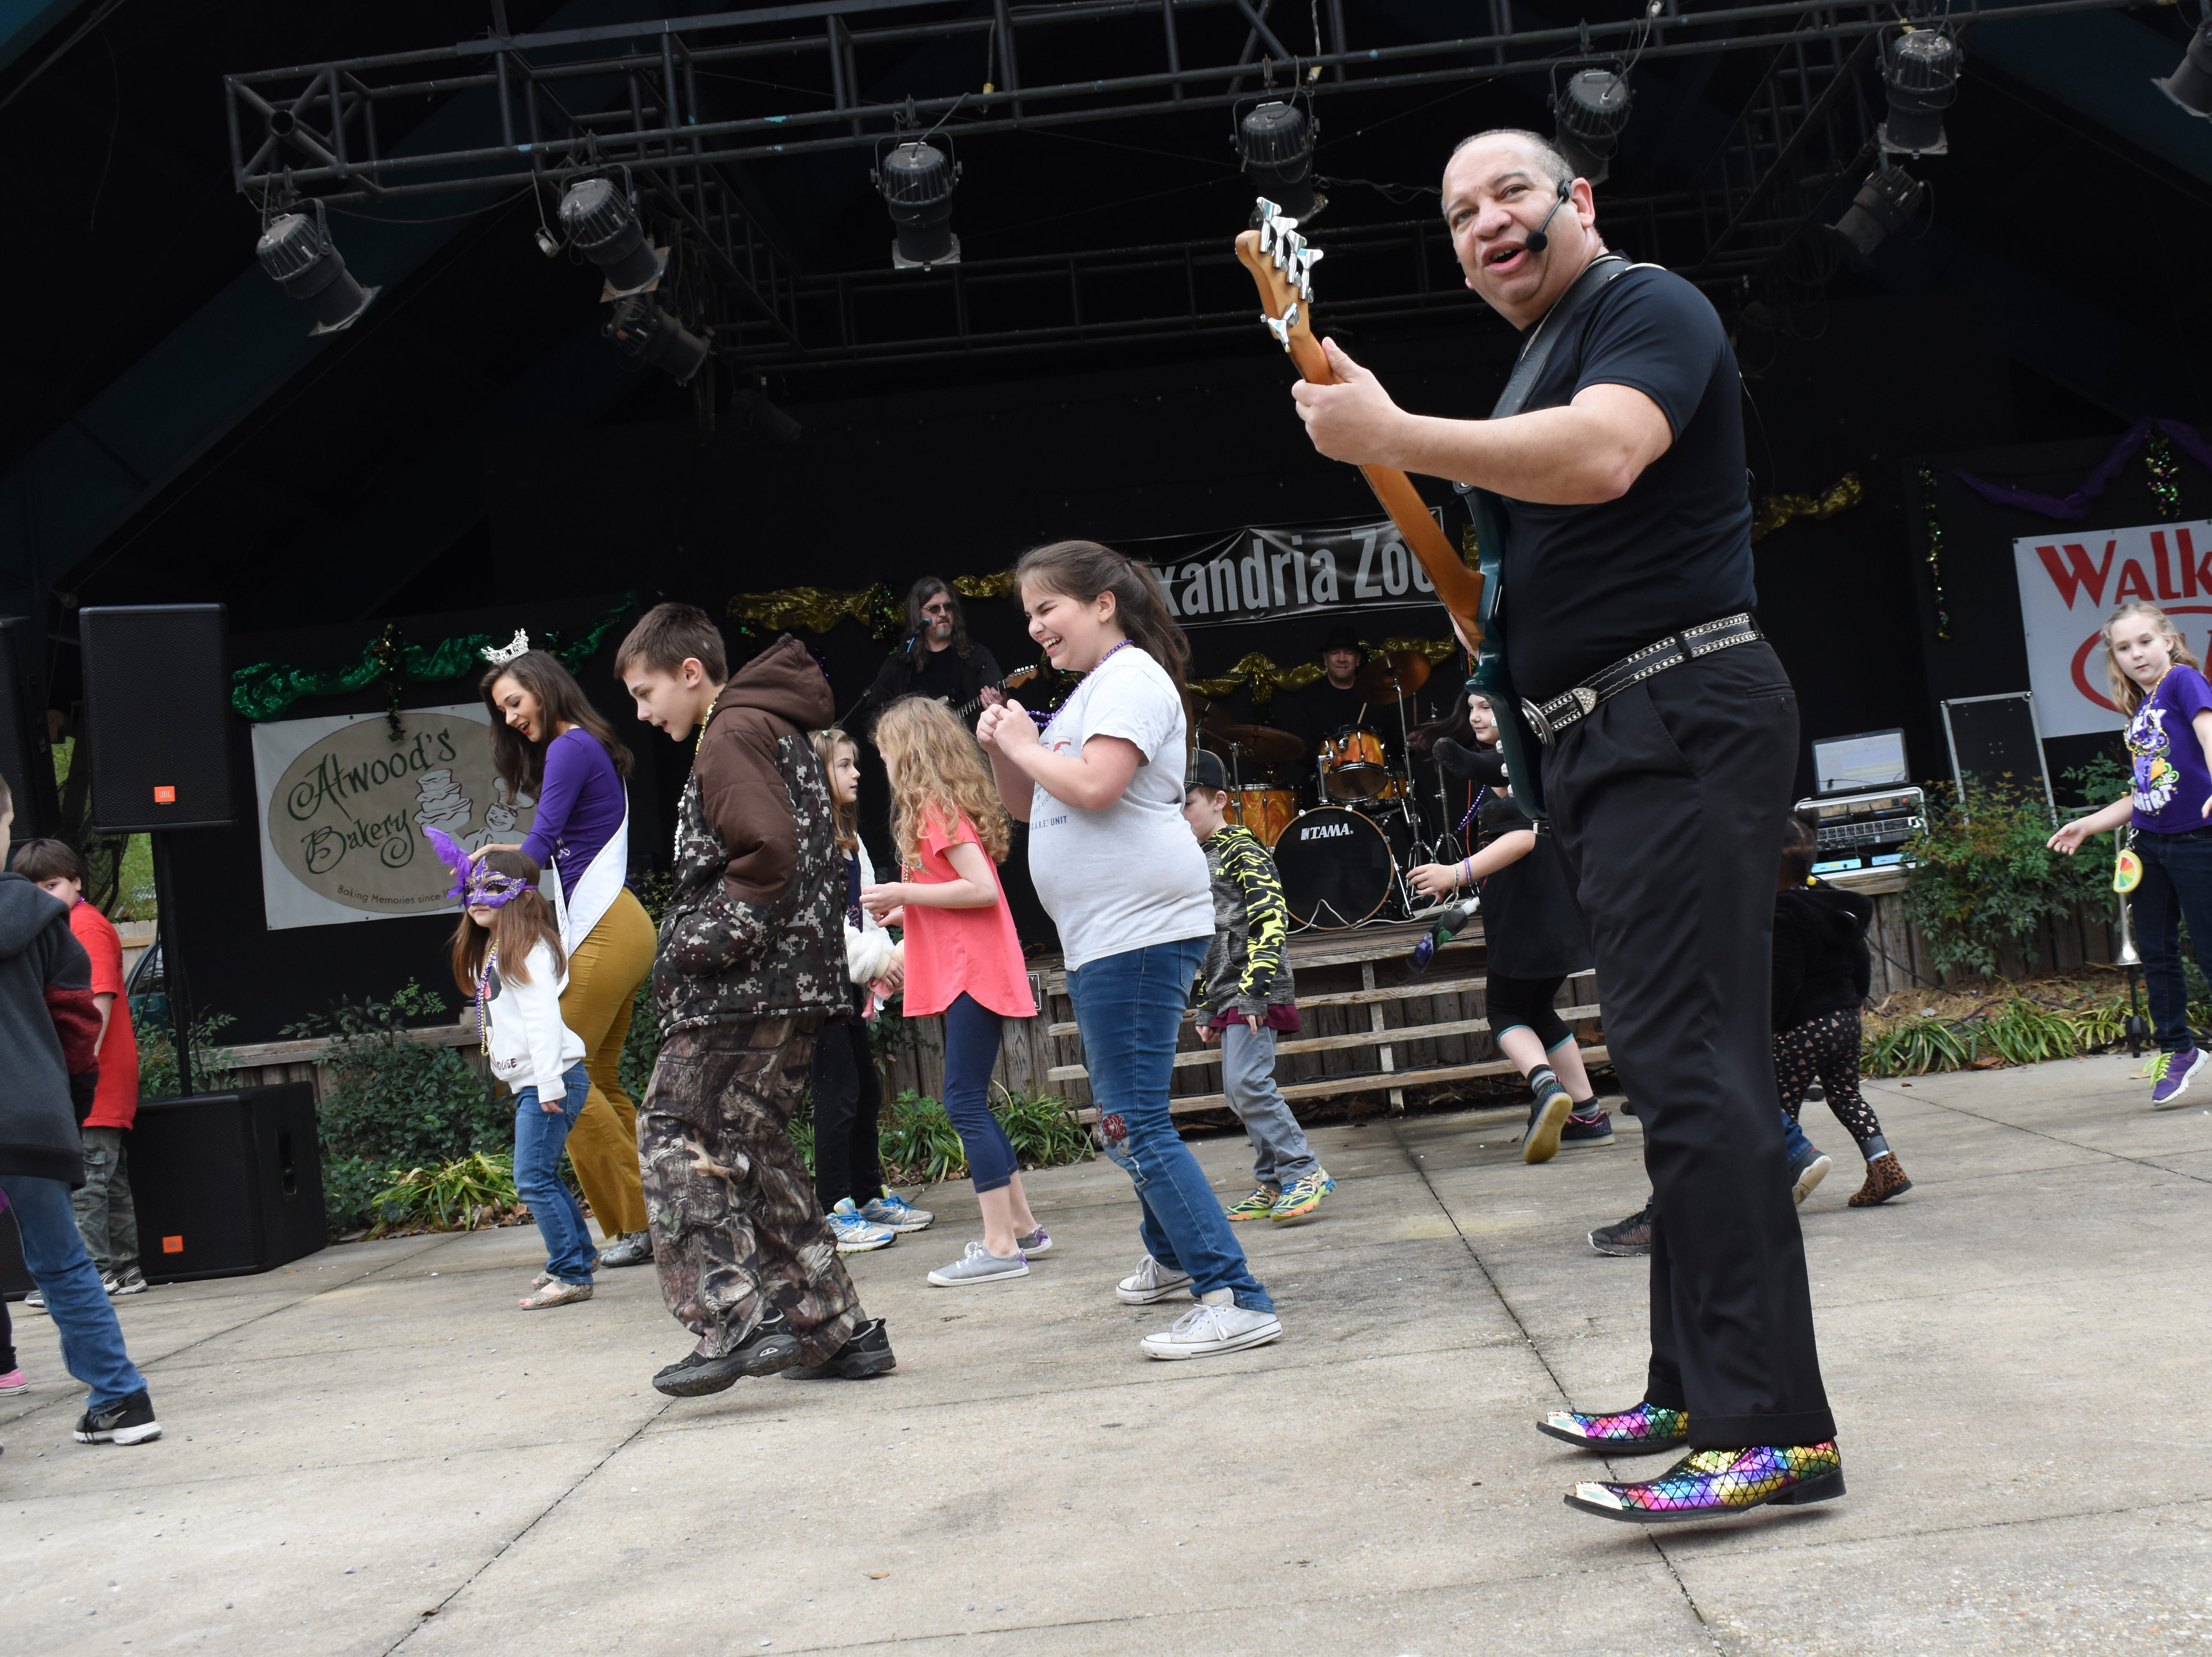 The Alexandria Zoo held their annual Mardi Gras party Saturday, March 2, 2019. Atwood's Bakery provided King Cake. The LaCour Trio provided music. Costumed characters were onhand for photo opportunities. Visitors could also have an unclose visit with a few of the zoo animals and learn about them. The event was sponsored by Friends of the Alexandria Zoo, the Alexandria Mayor's Office, Atwood's Bakery and Walker Kia.